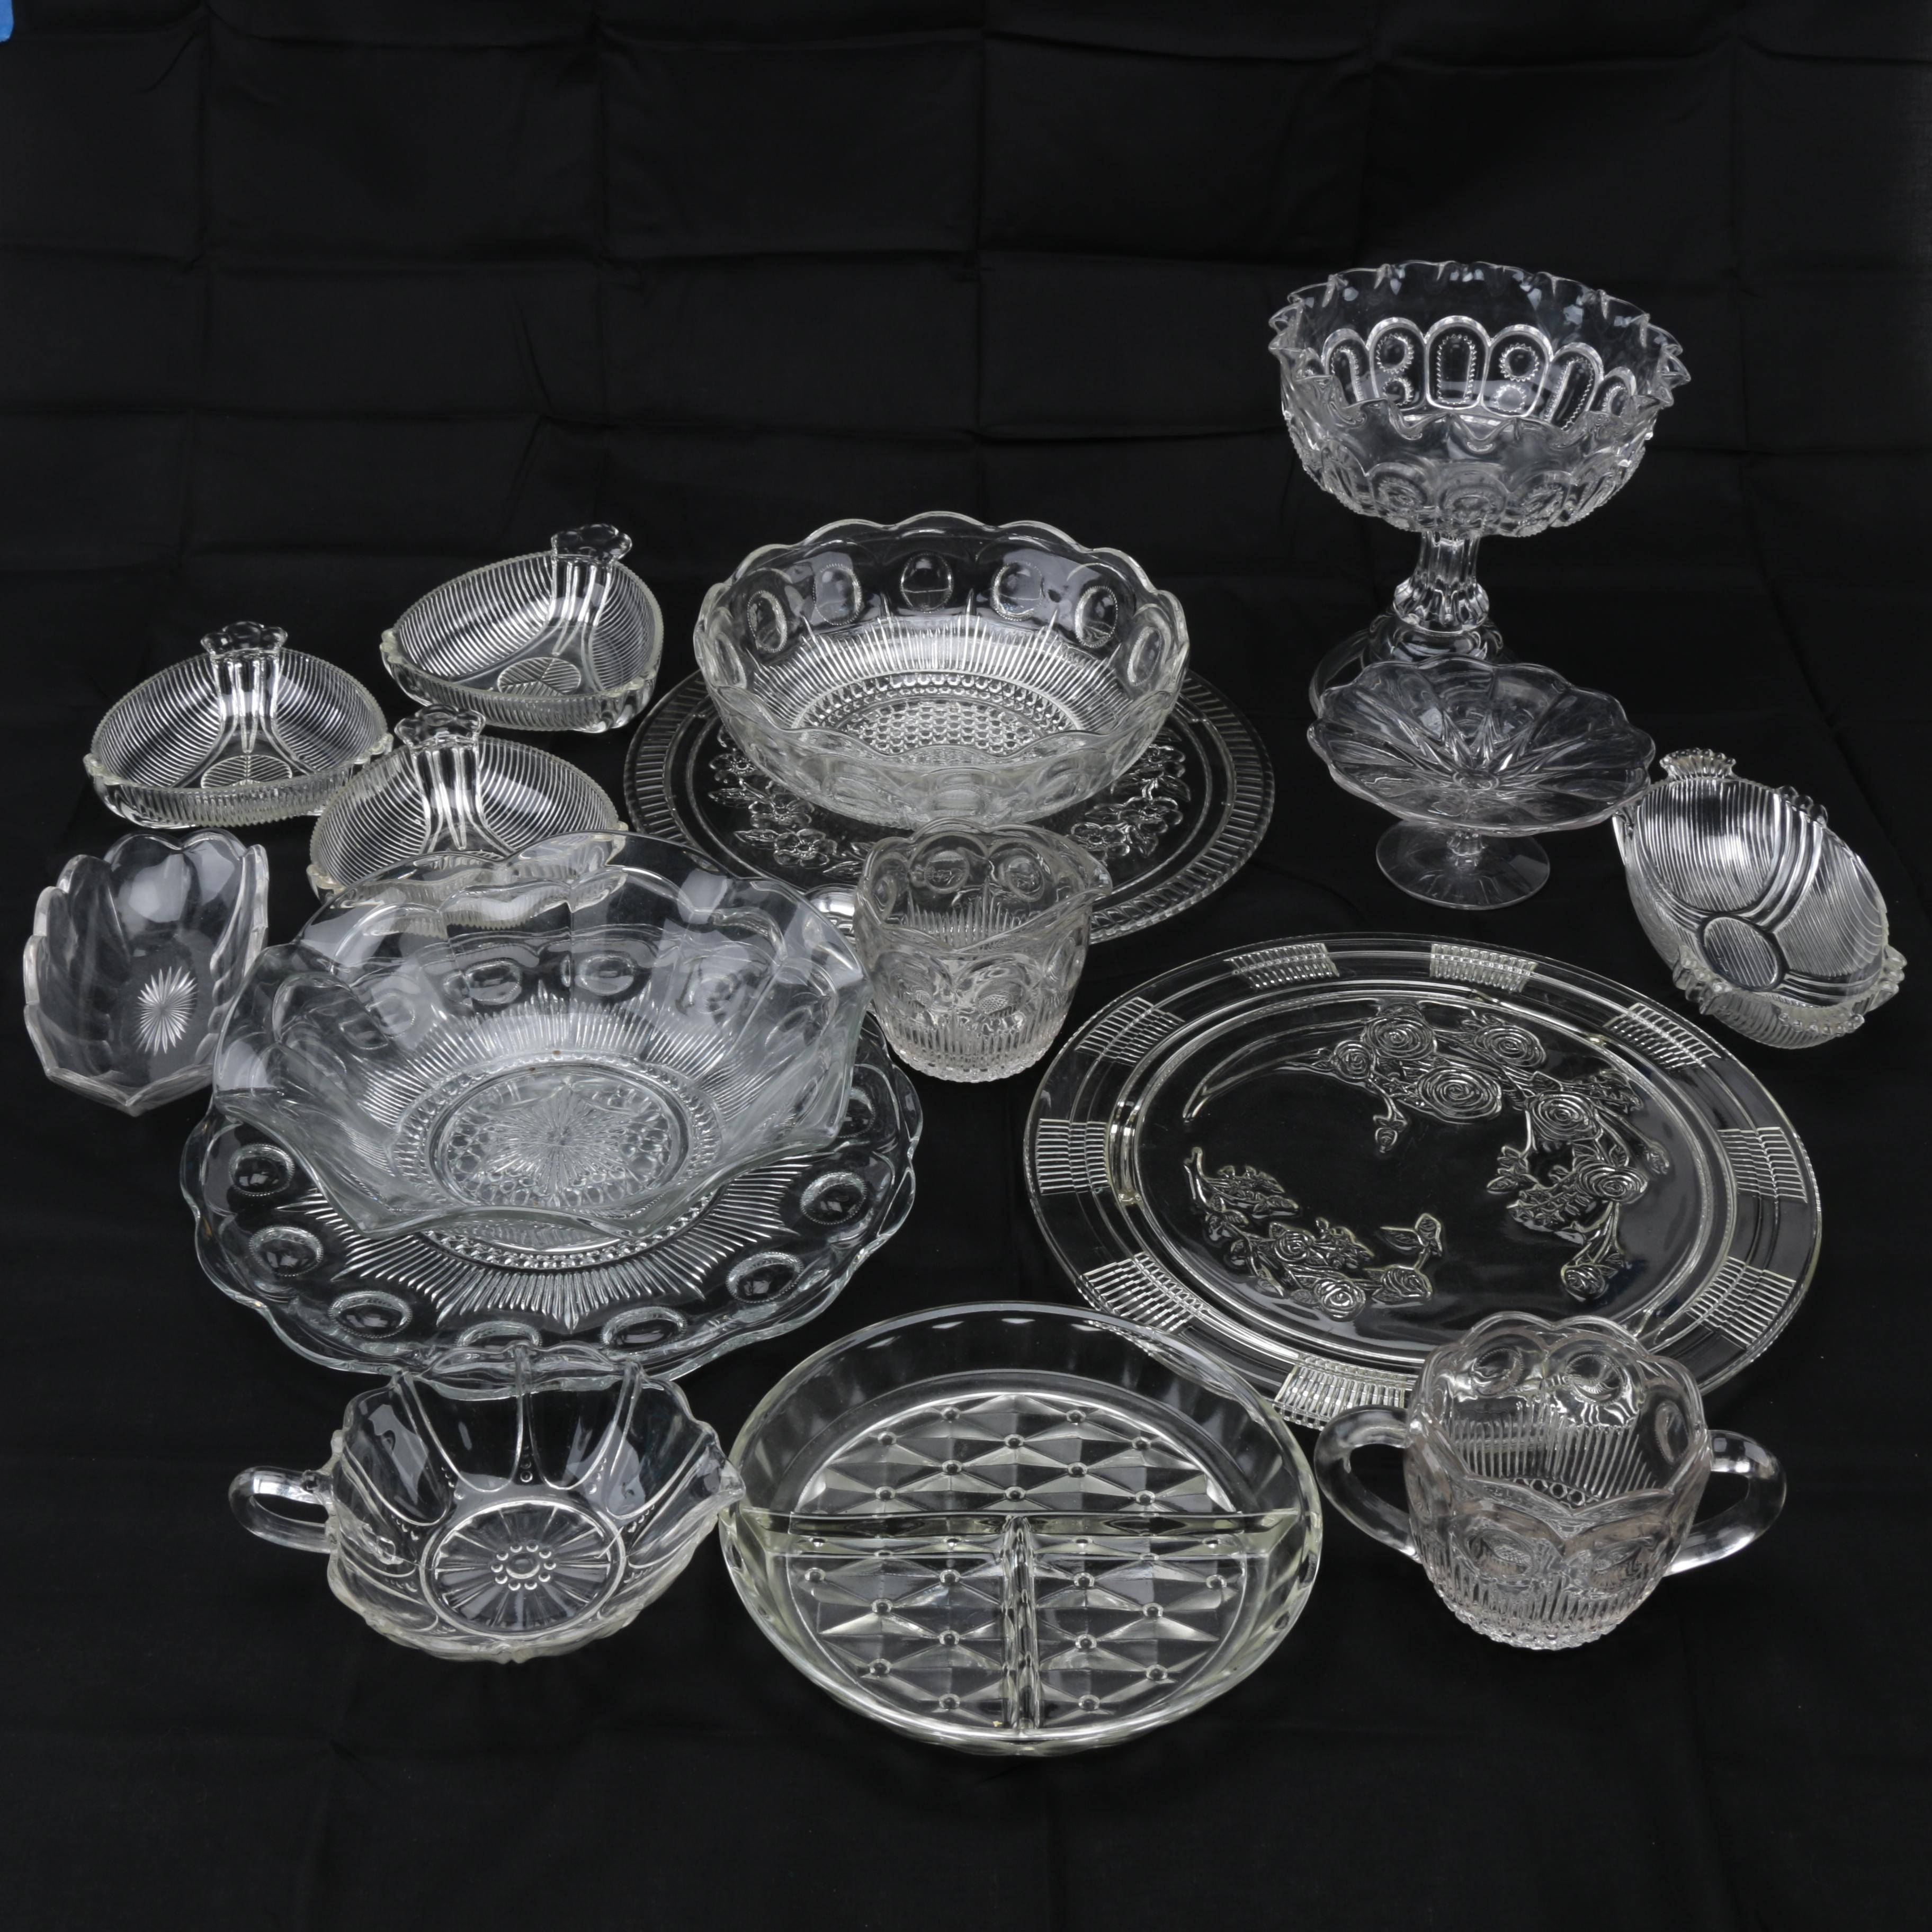 Collection of Pressed Glass Serveware